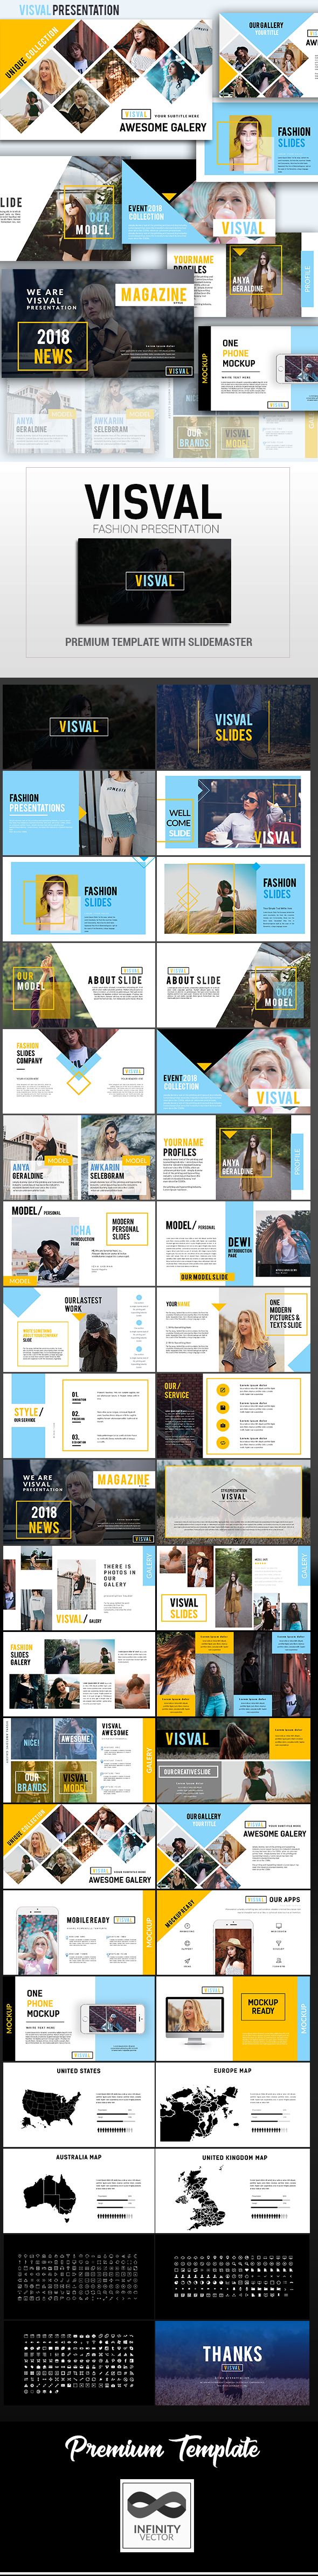 Visval Fashion Presentation Keynote - Keynote Templates Presentation Templates